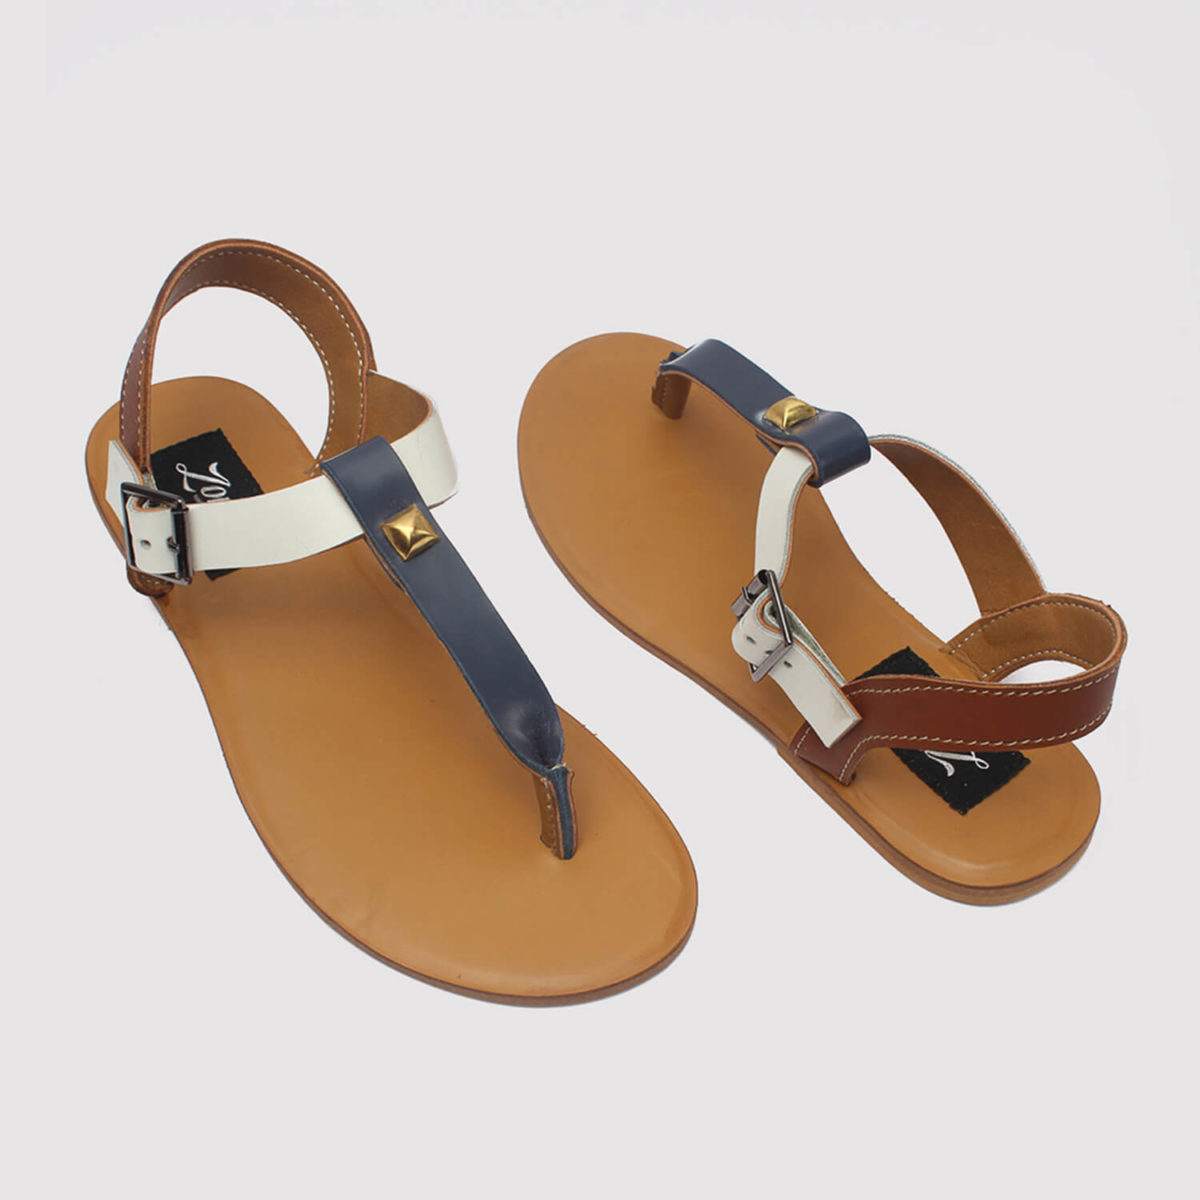 toke sandals blue brown white by zorkle shoes in lagos nigeria